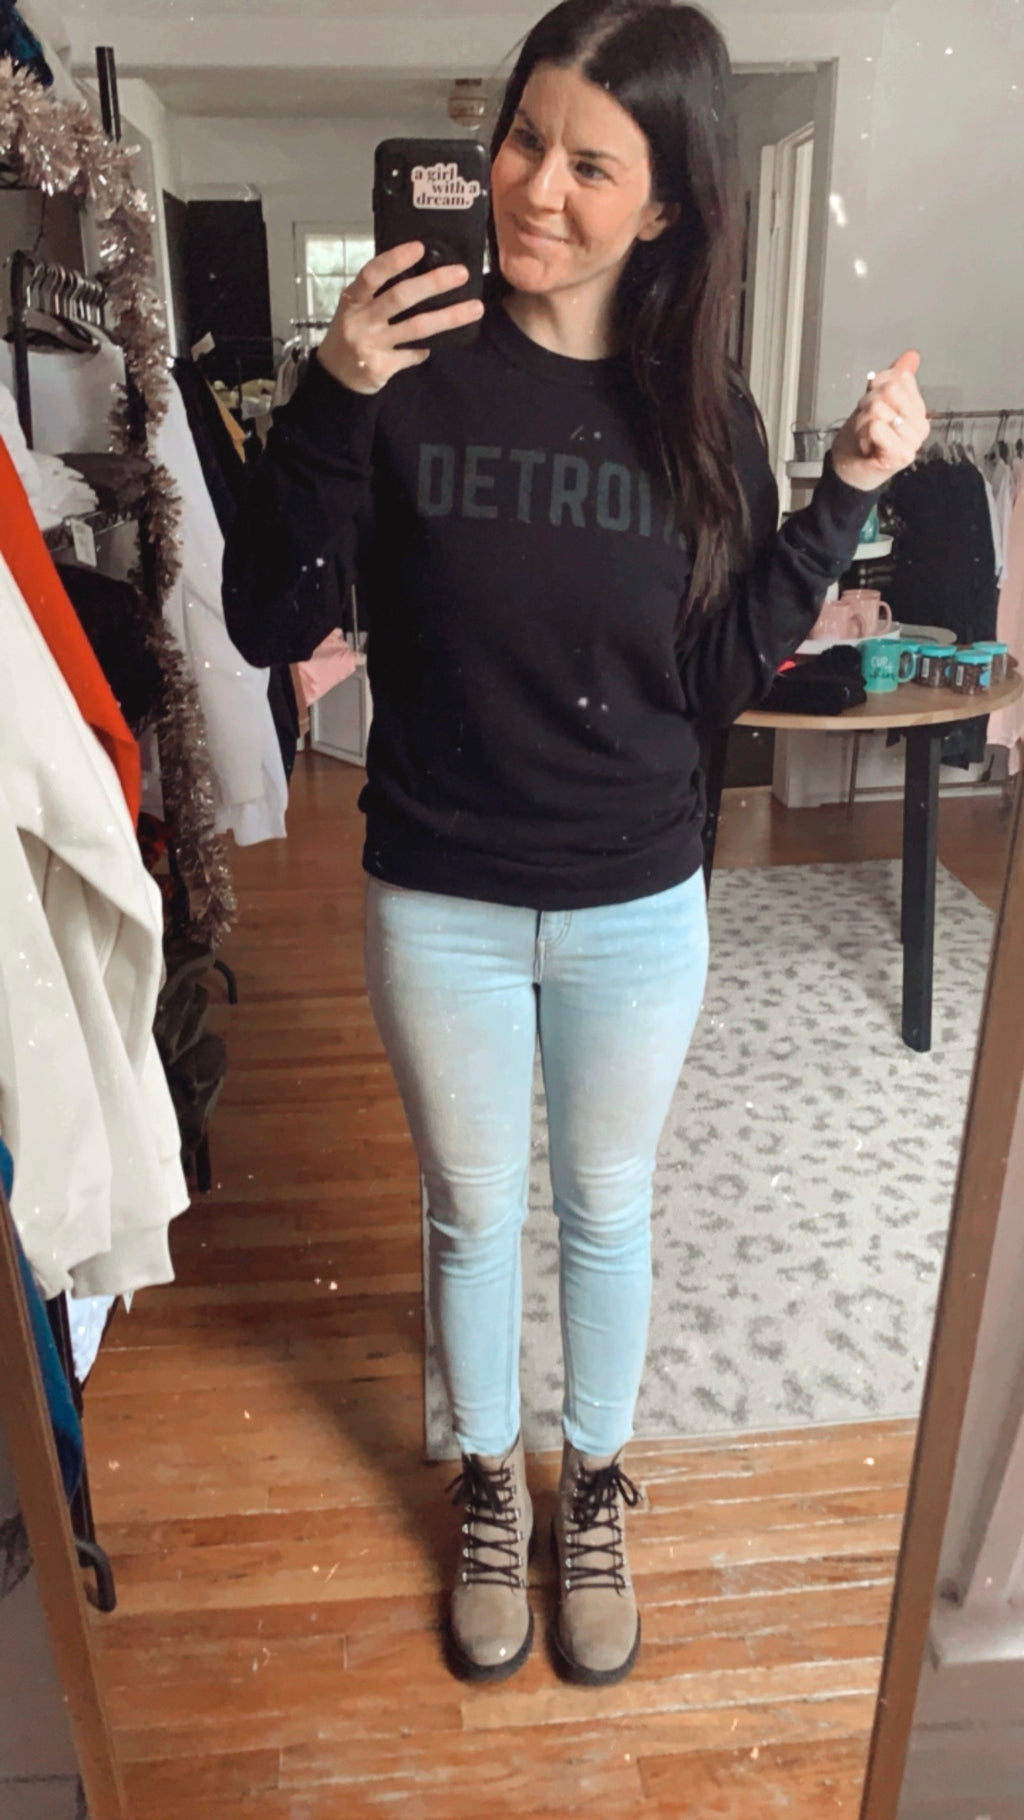 Detroit Black on Black French Terry Crew